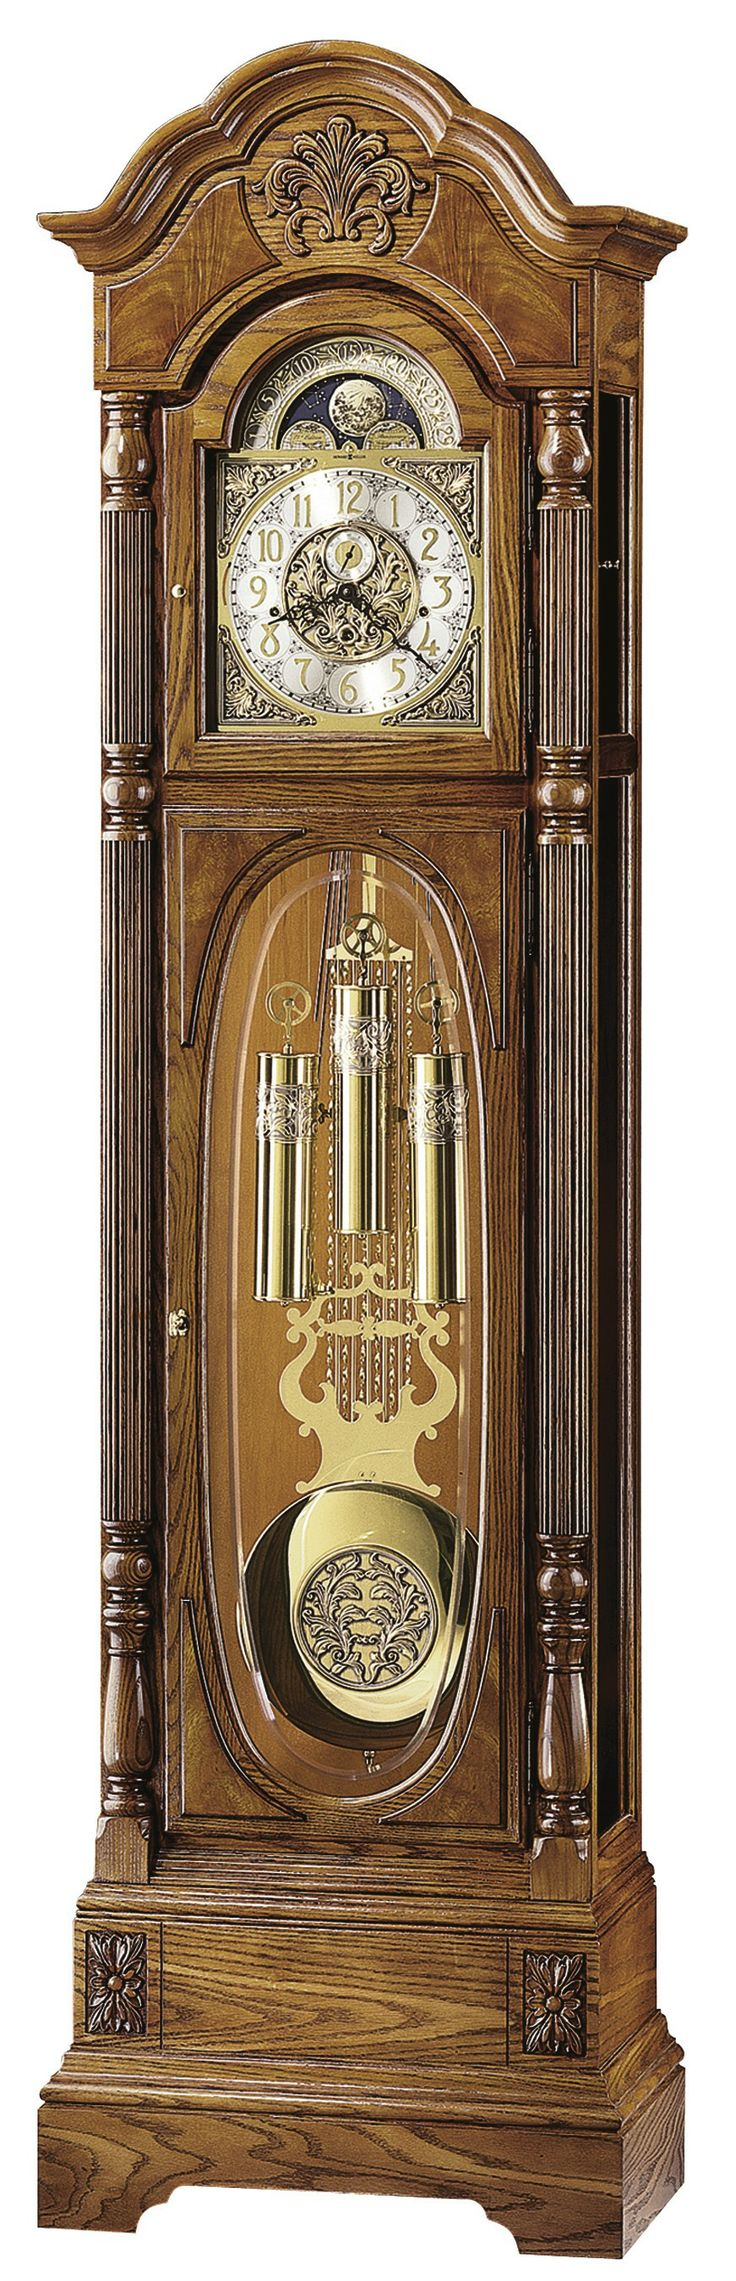 Howard Miller Clocks | Howard Miller CLAYTON 610-950 Grandfather Clock